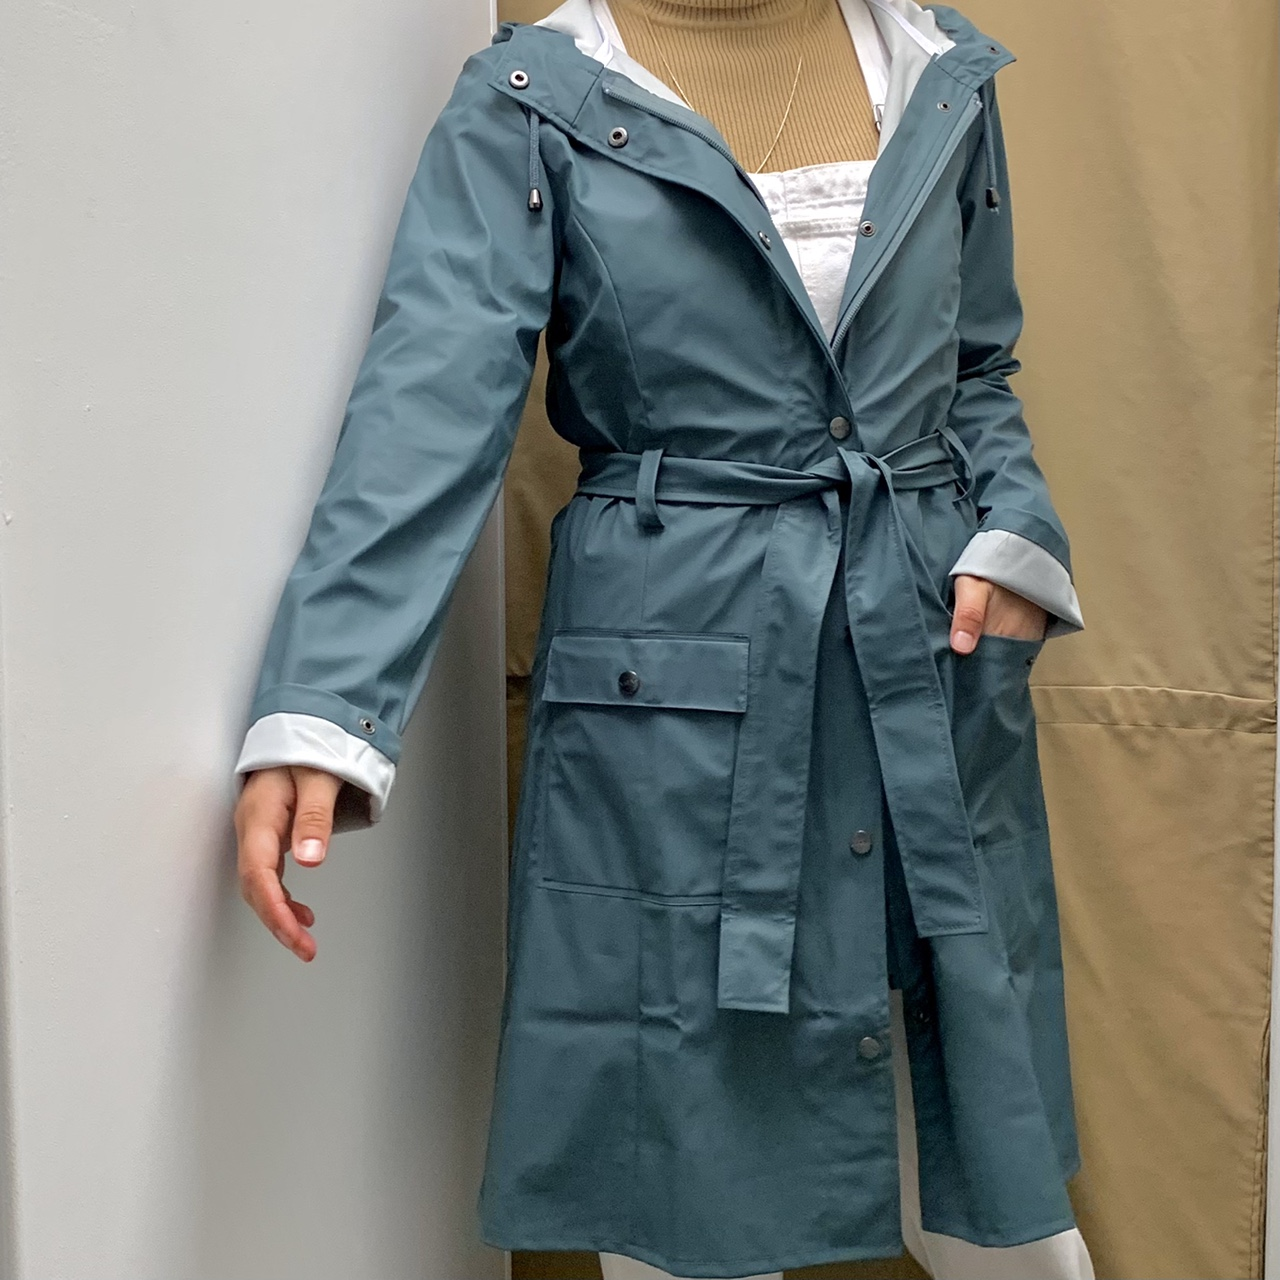 Product Image 1 - RAINS Curve Jacket in an